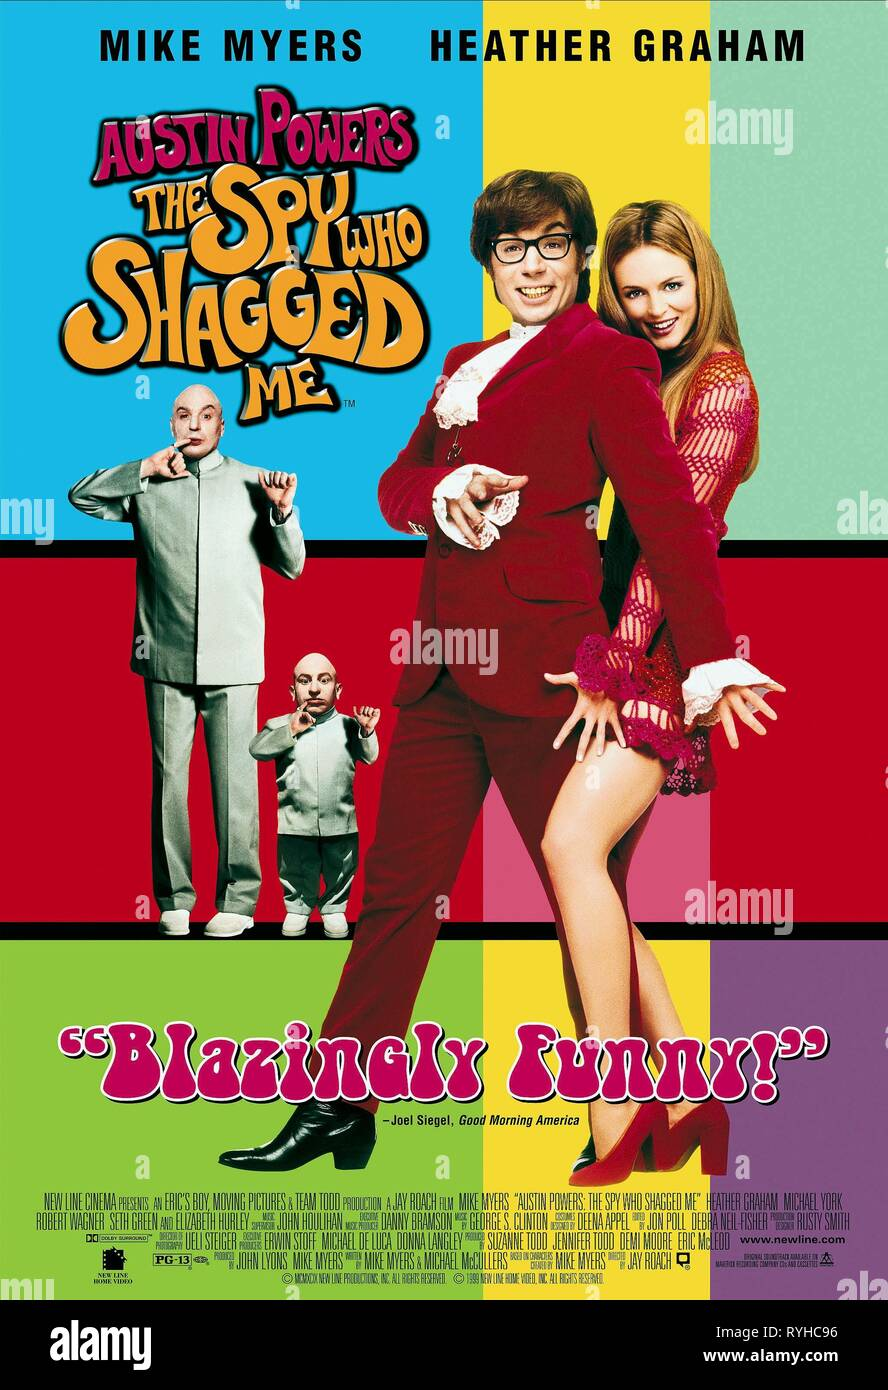 Mike Myers Verne Troyer Heather Graham Poster Austin Powers The Spy Who Shagged Me 1999 Stock Photo Alamy